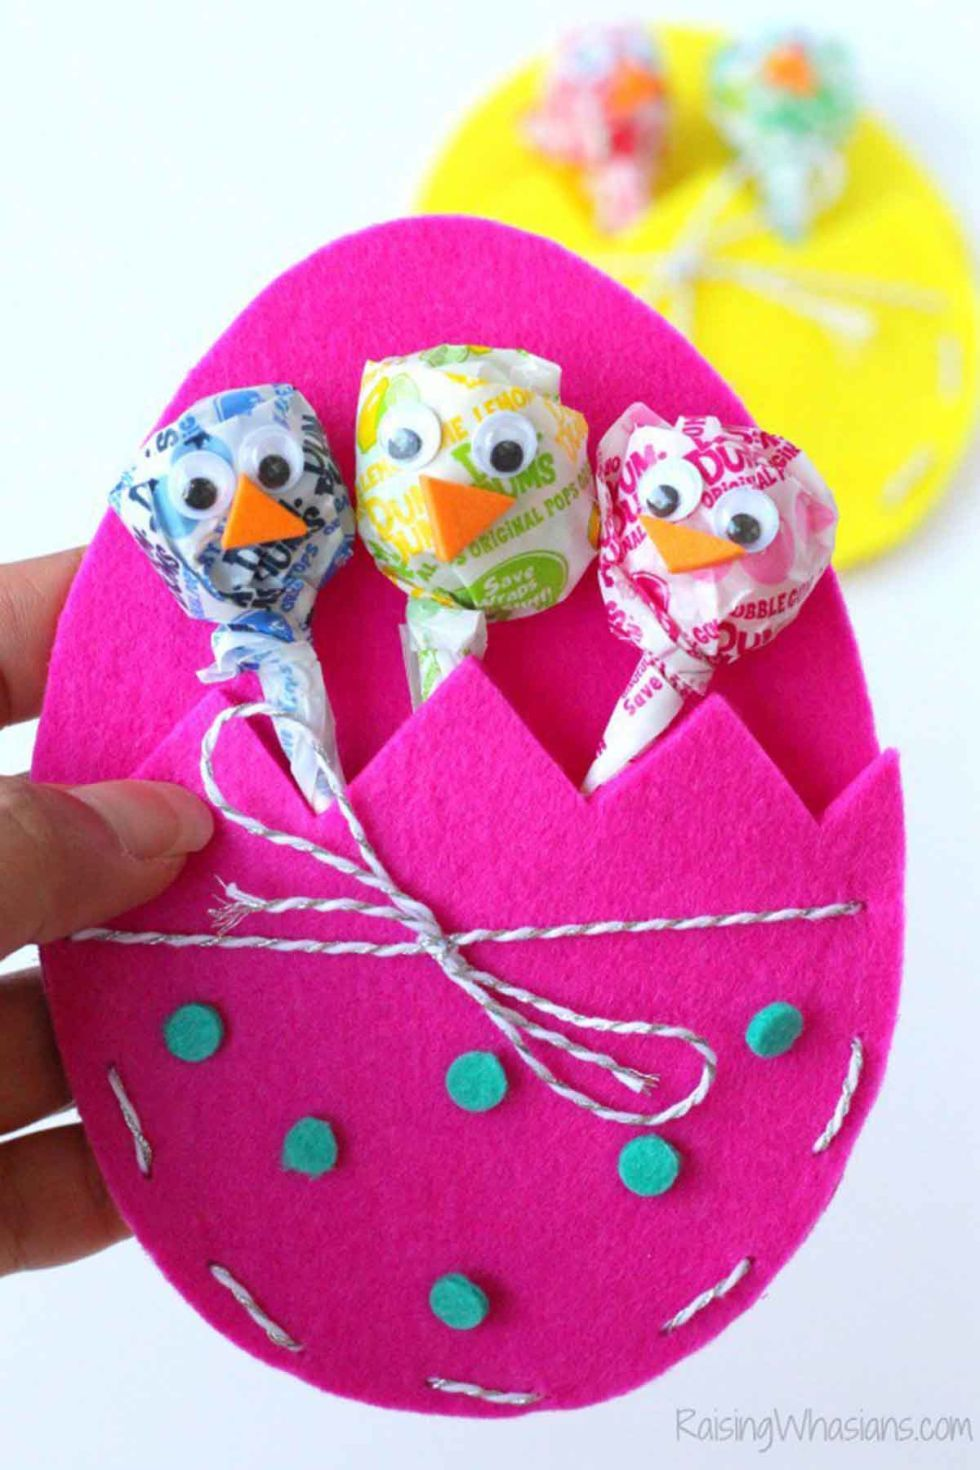 Personalized Easter Baskets: 43 Adorable Easter Crafts Even Adults Will Love Making